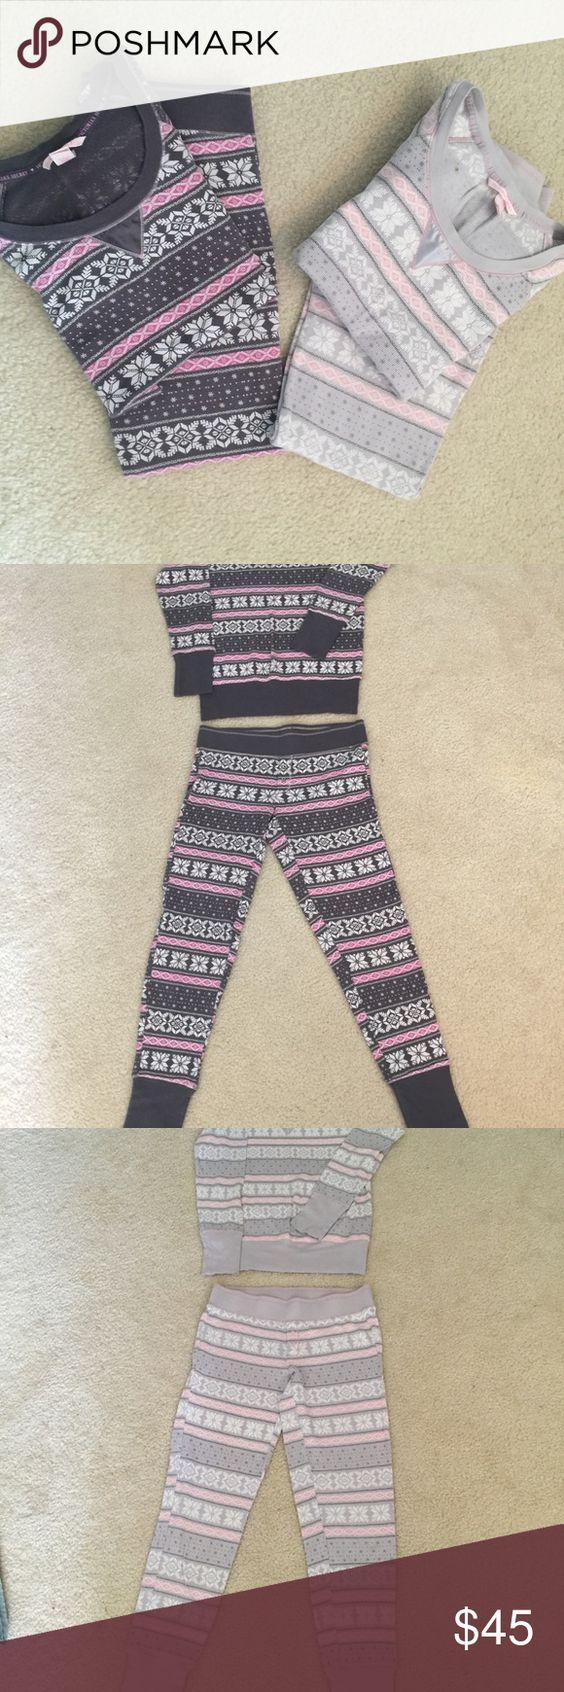 Victoria Secrets thermal pj's. 2 sets 2 sets of Victoria Secrets thermal pj's. In good condition. Selling both sets for $45. Willing to separate for $24 a set. Victoria's Secret Intimates & Sleepwear Pajamas